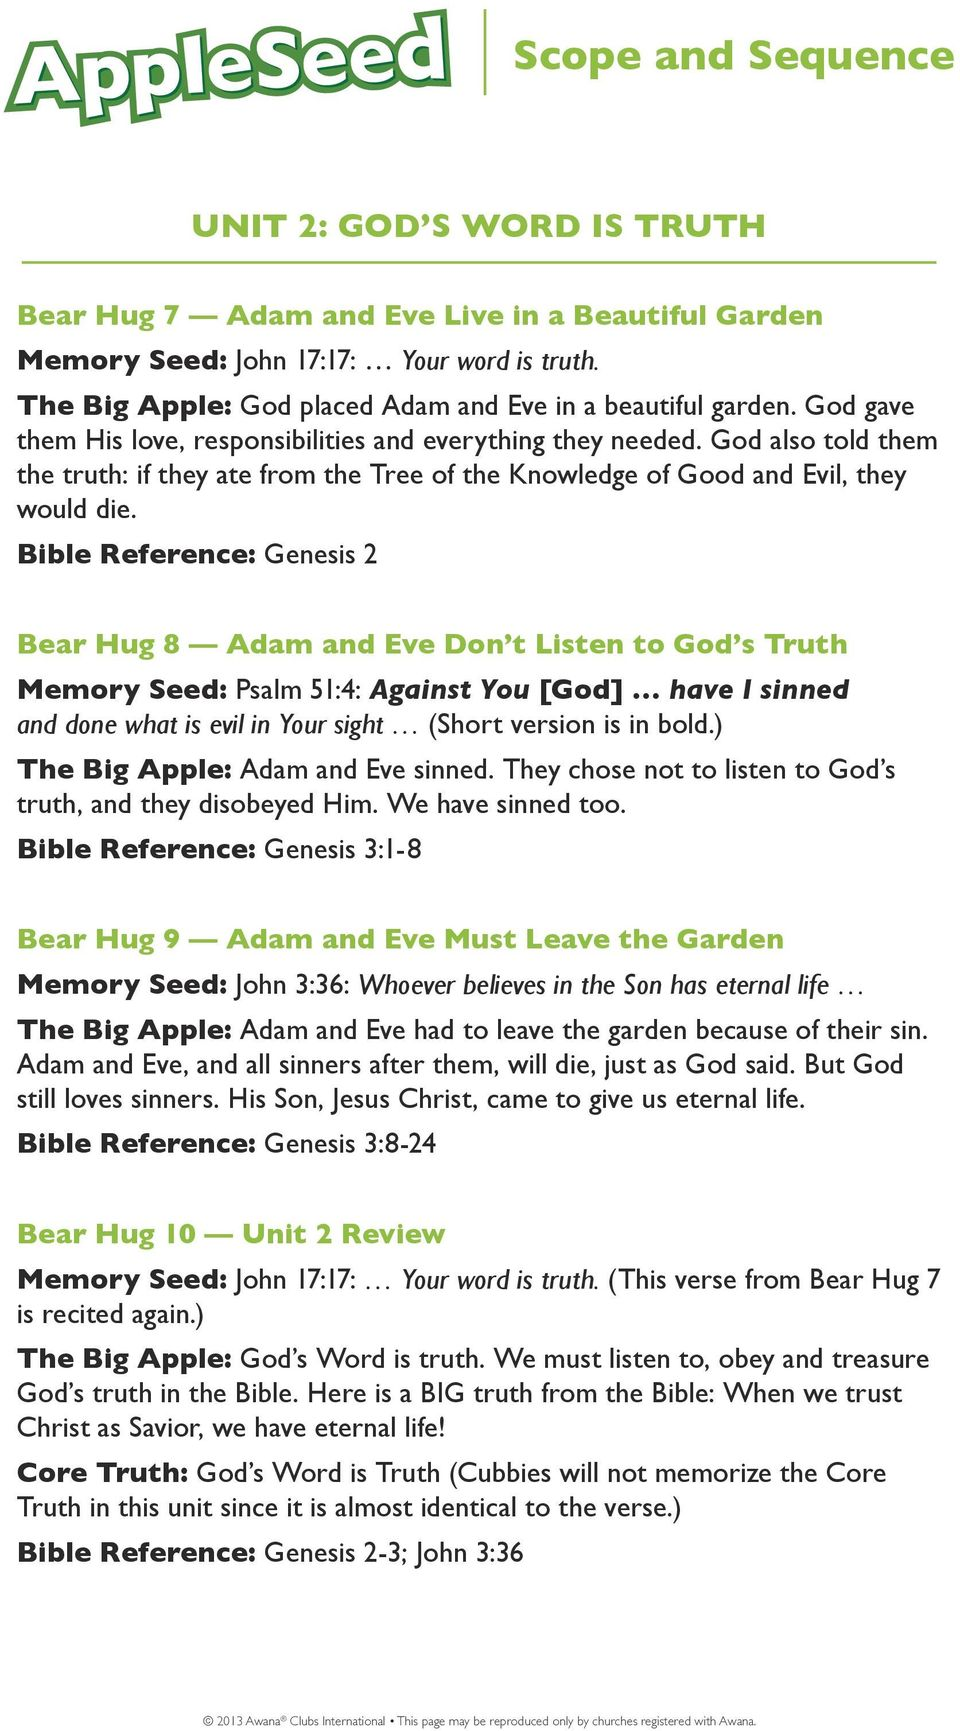 Bible Reference: Genesis 2 Bear Hug 8 Adam and Eve Don t Listen to God s Truth Memory Seed: Psalm 51:4: Against You [God] have I sinned and done what is evil in Your sight (Short version is in bold.